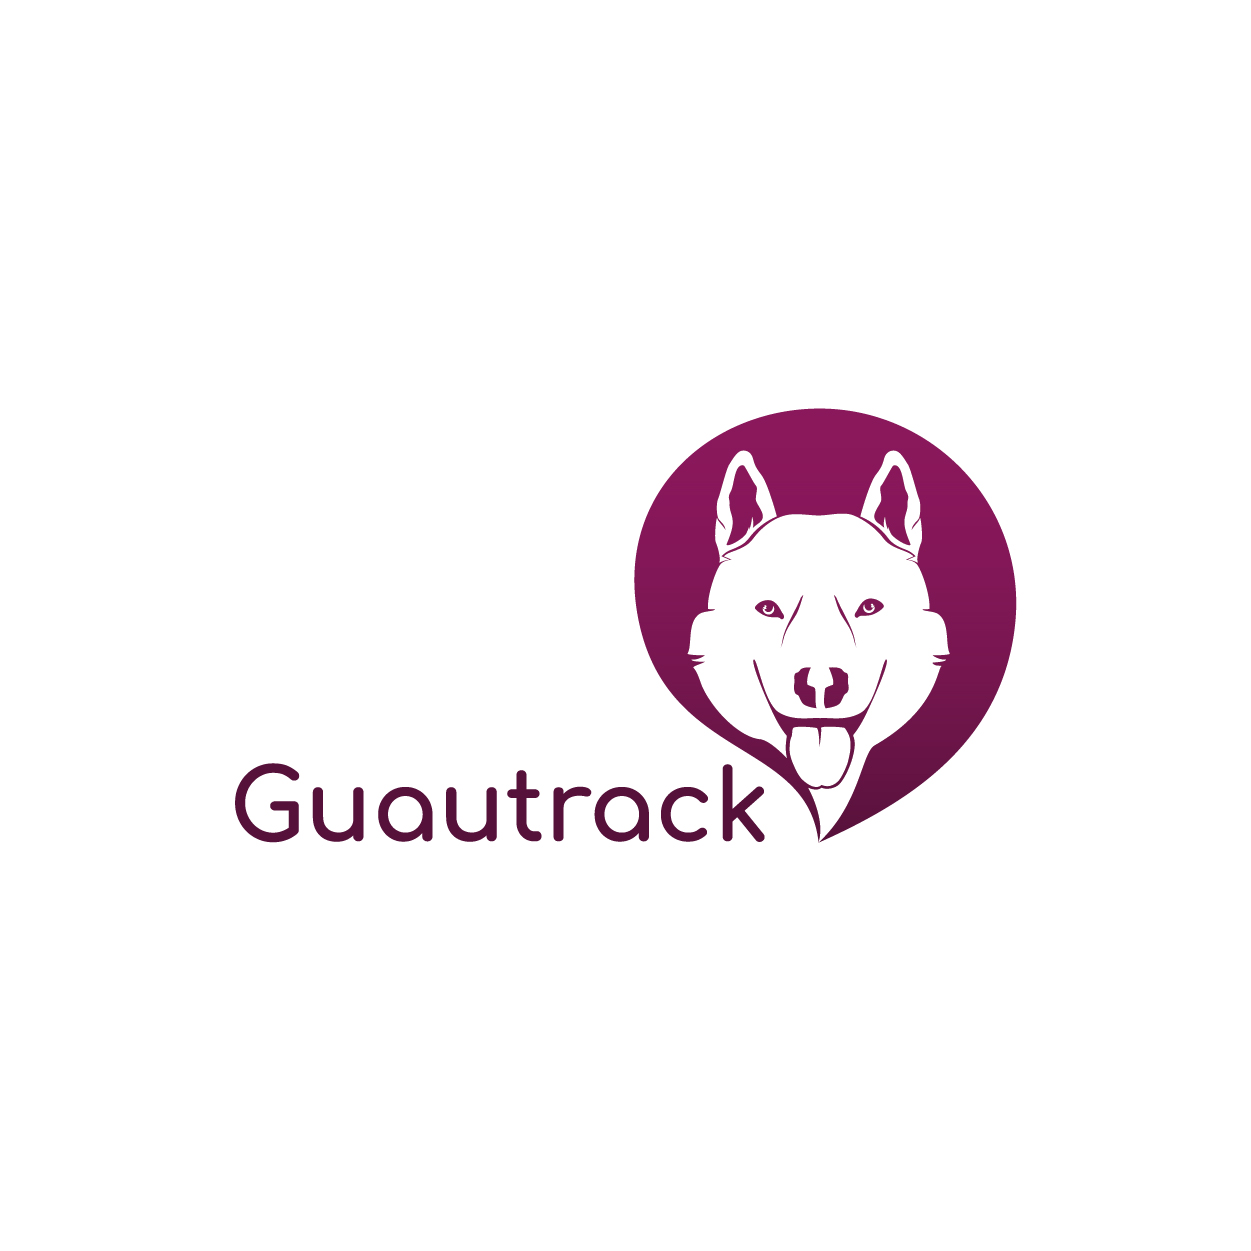 guautrack-31